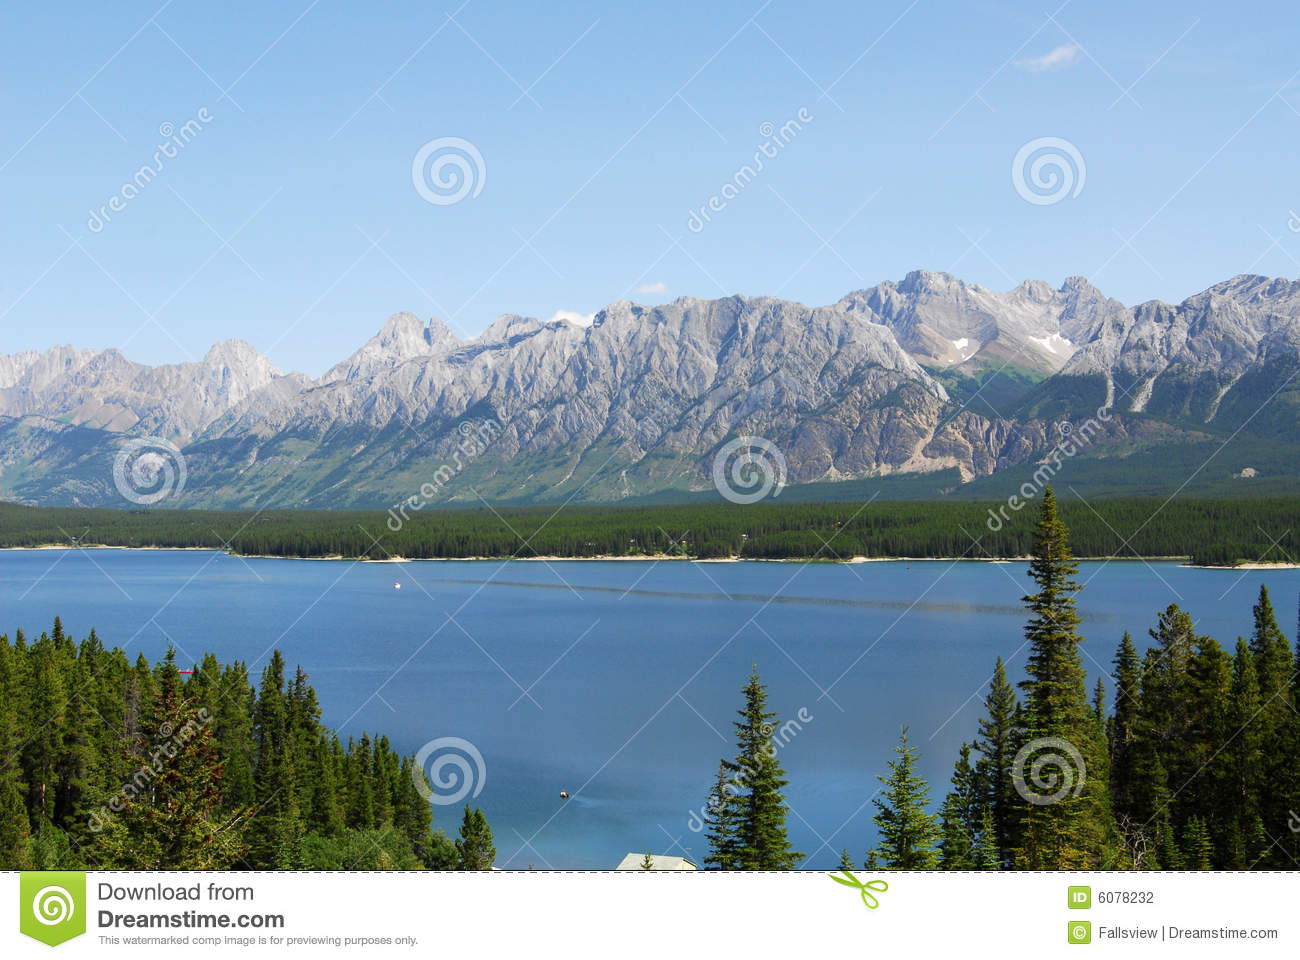 Rocky mountains and lake